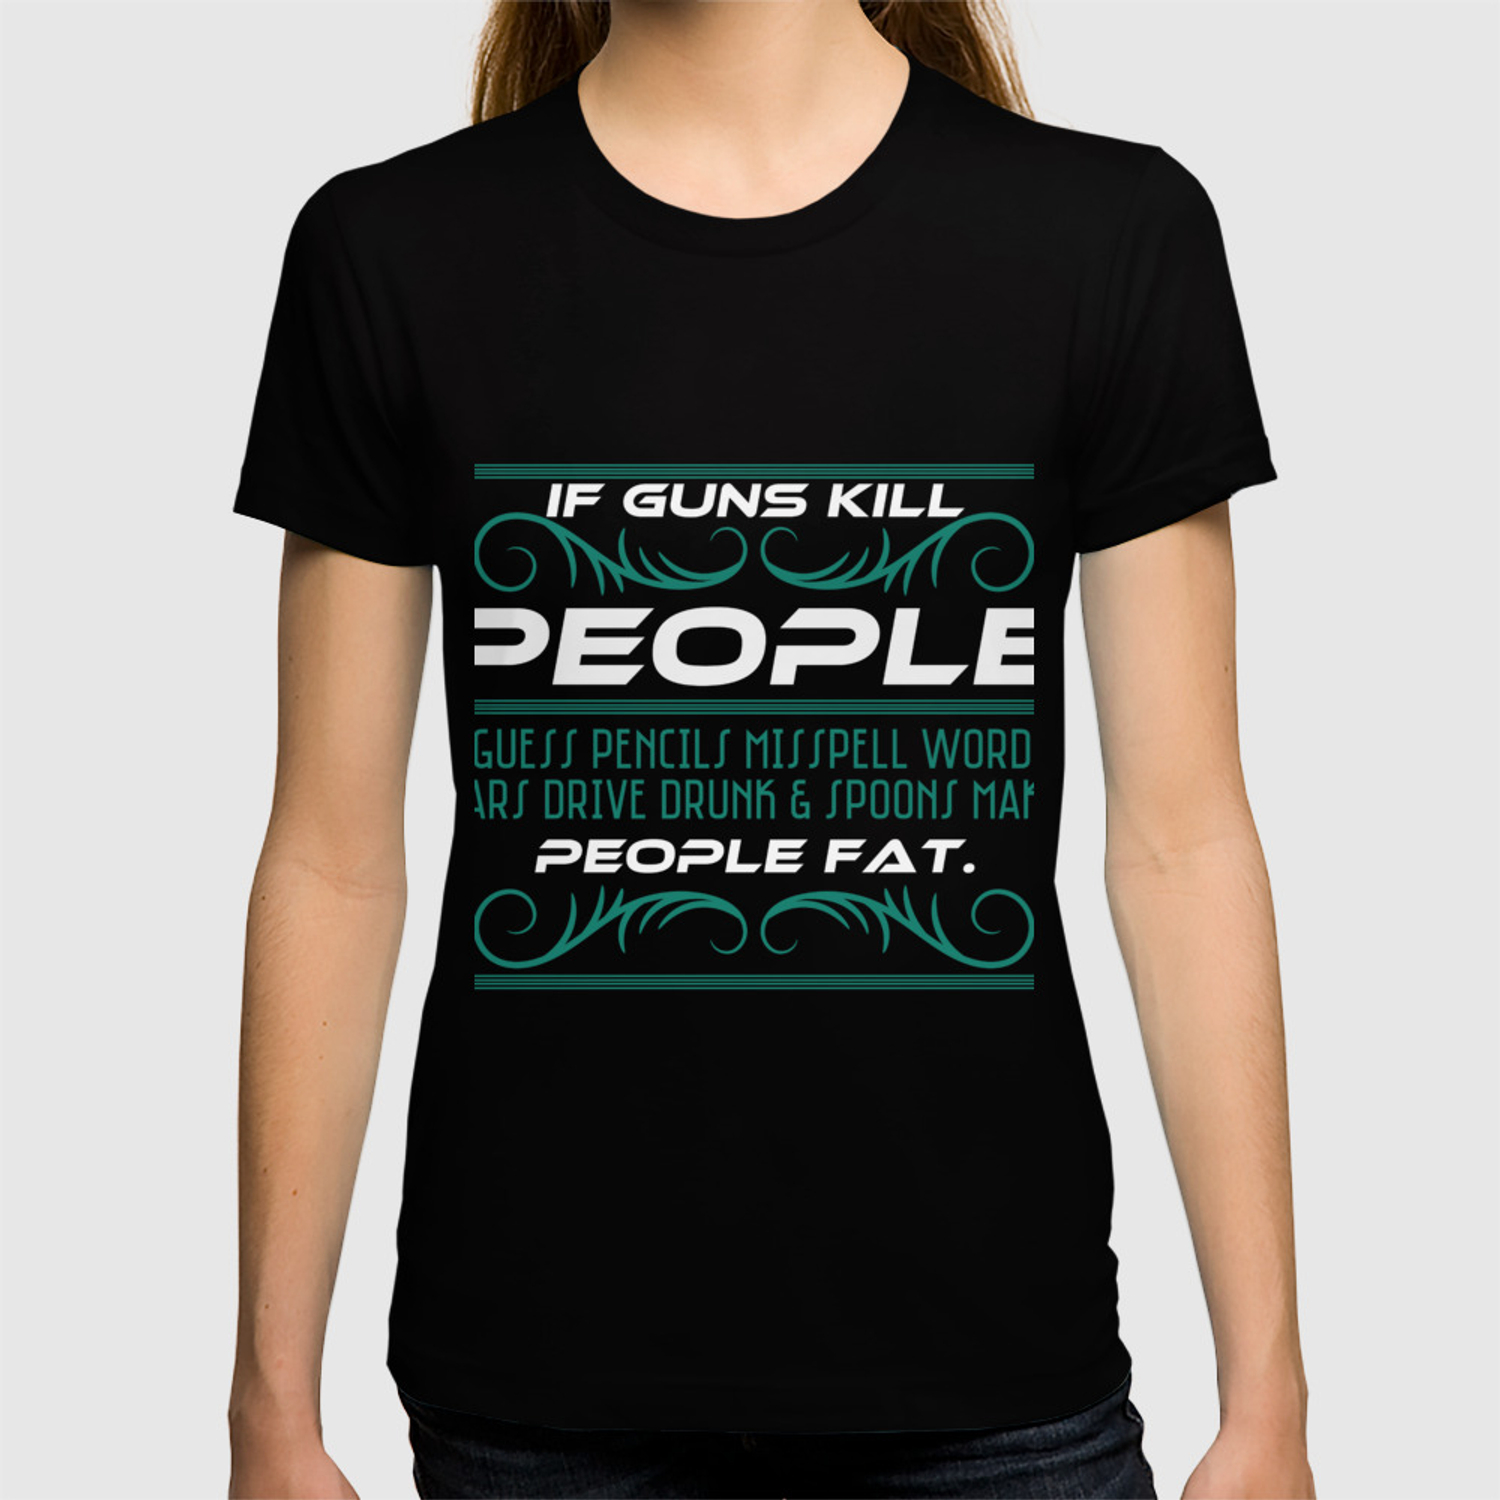 7a2bb9416 If Guns Kill People I Guess Pencils Mispell Words Cars Drive Drunk & Spoons  Make People Fat T-shirt T-shirt